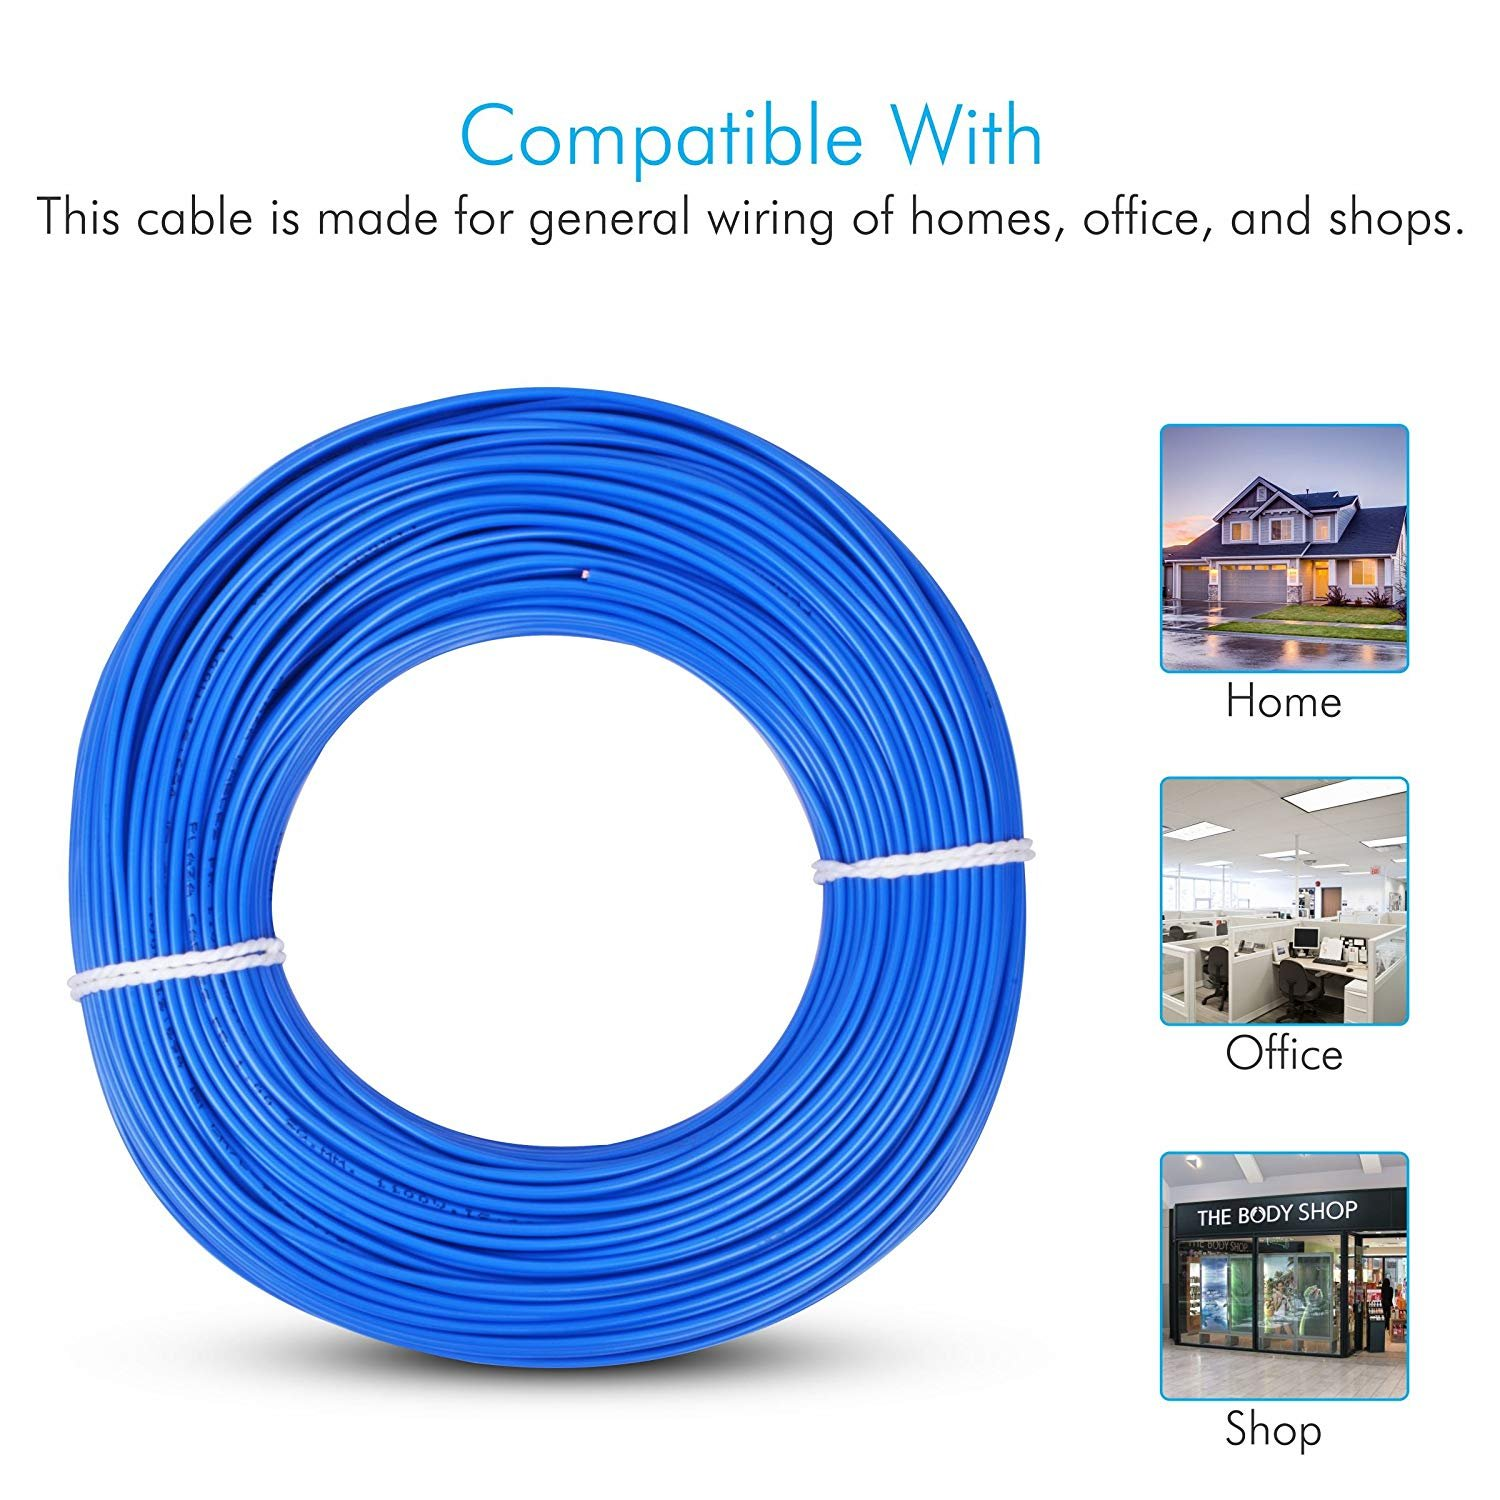 Plaza Cables 15 Sq Mm Copper Pvc Insulated Electrical Wire Cable Home Ethernet Wiring 1100v 90 Meter Blue90 Mtr Fr House Electric